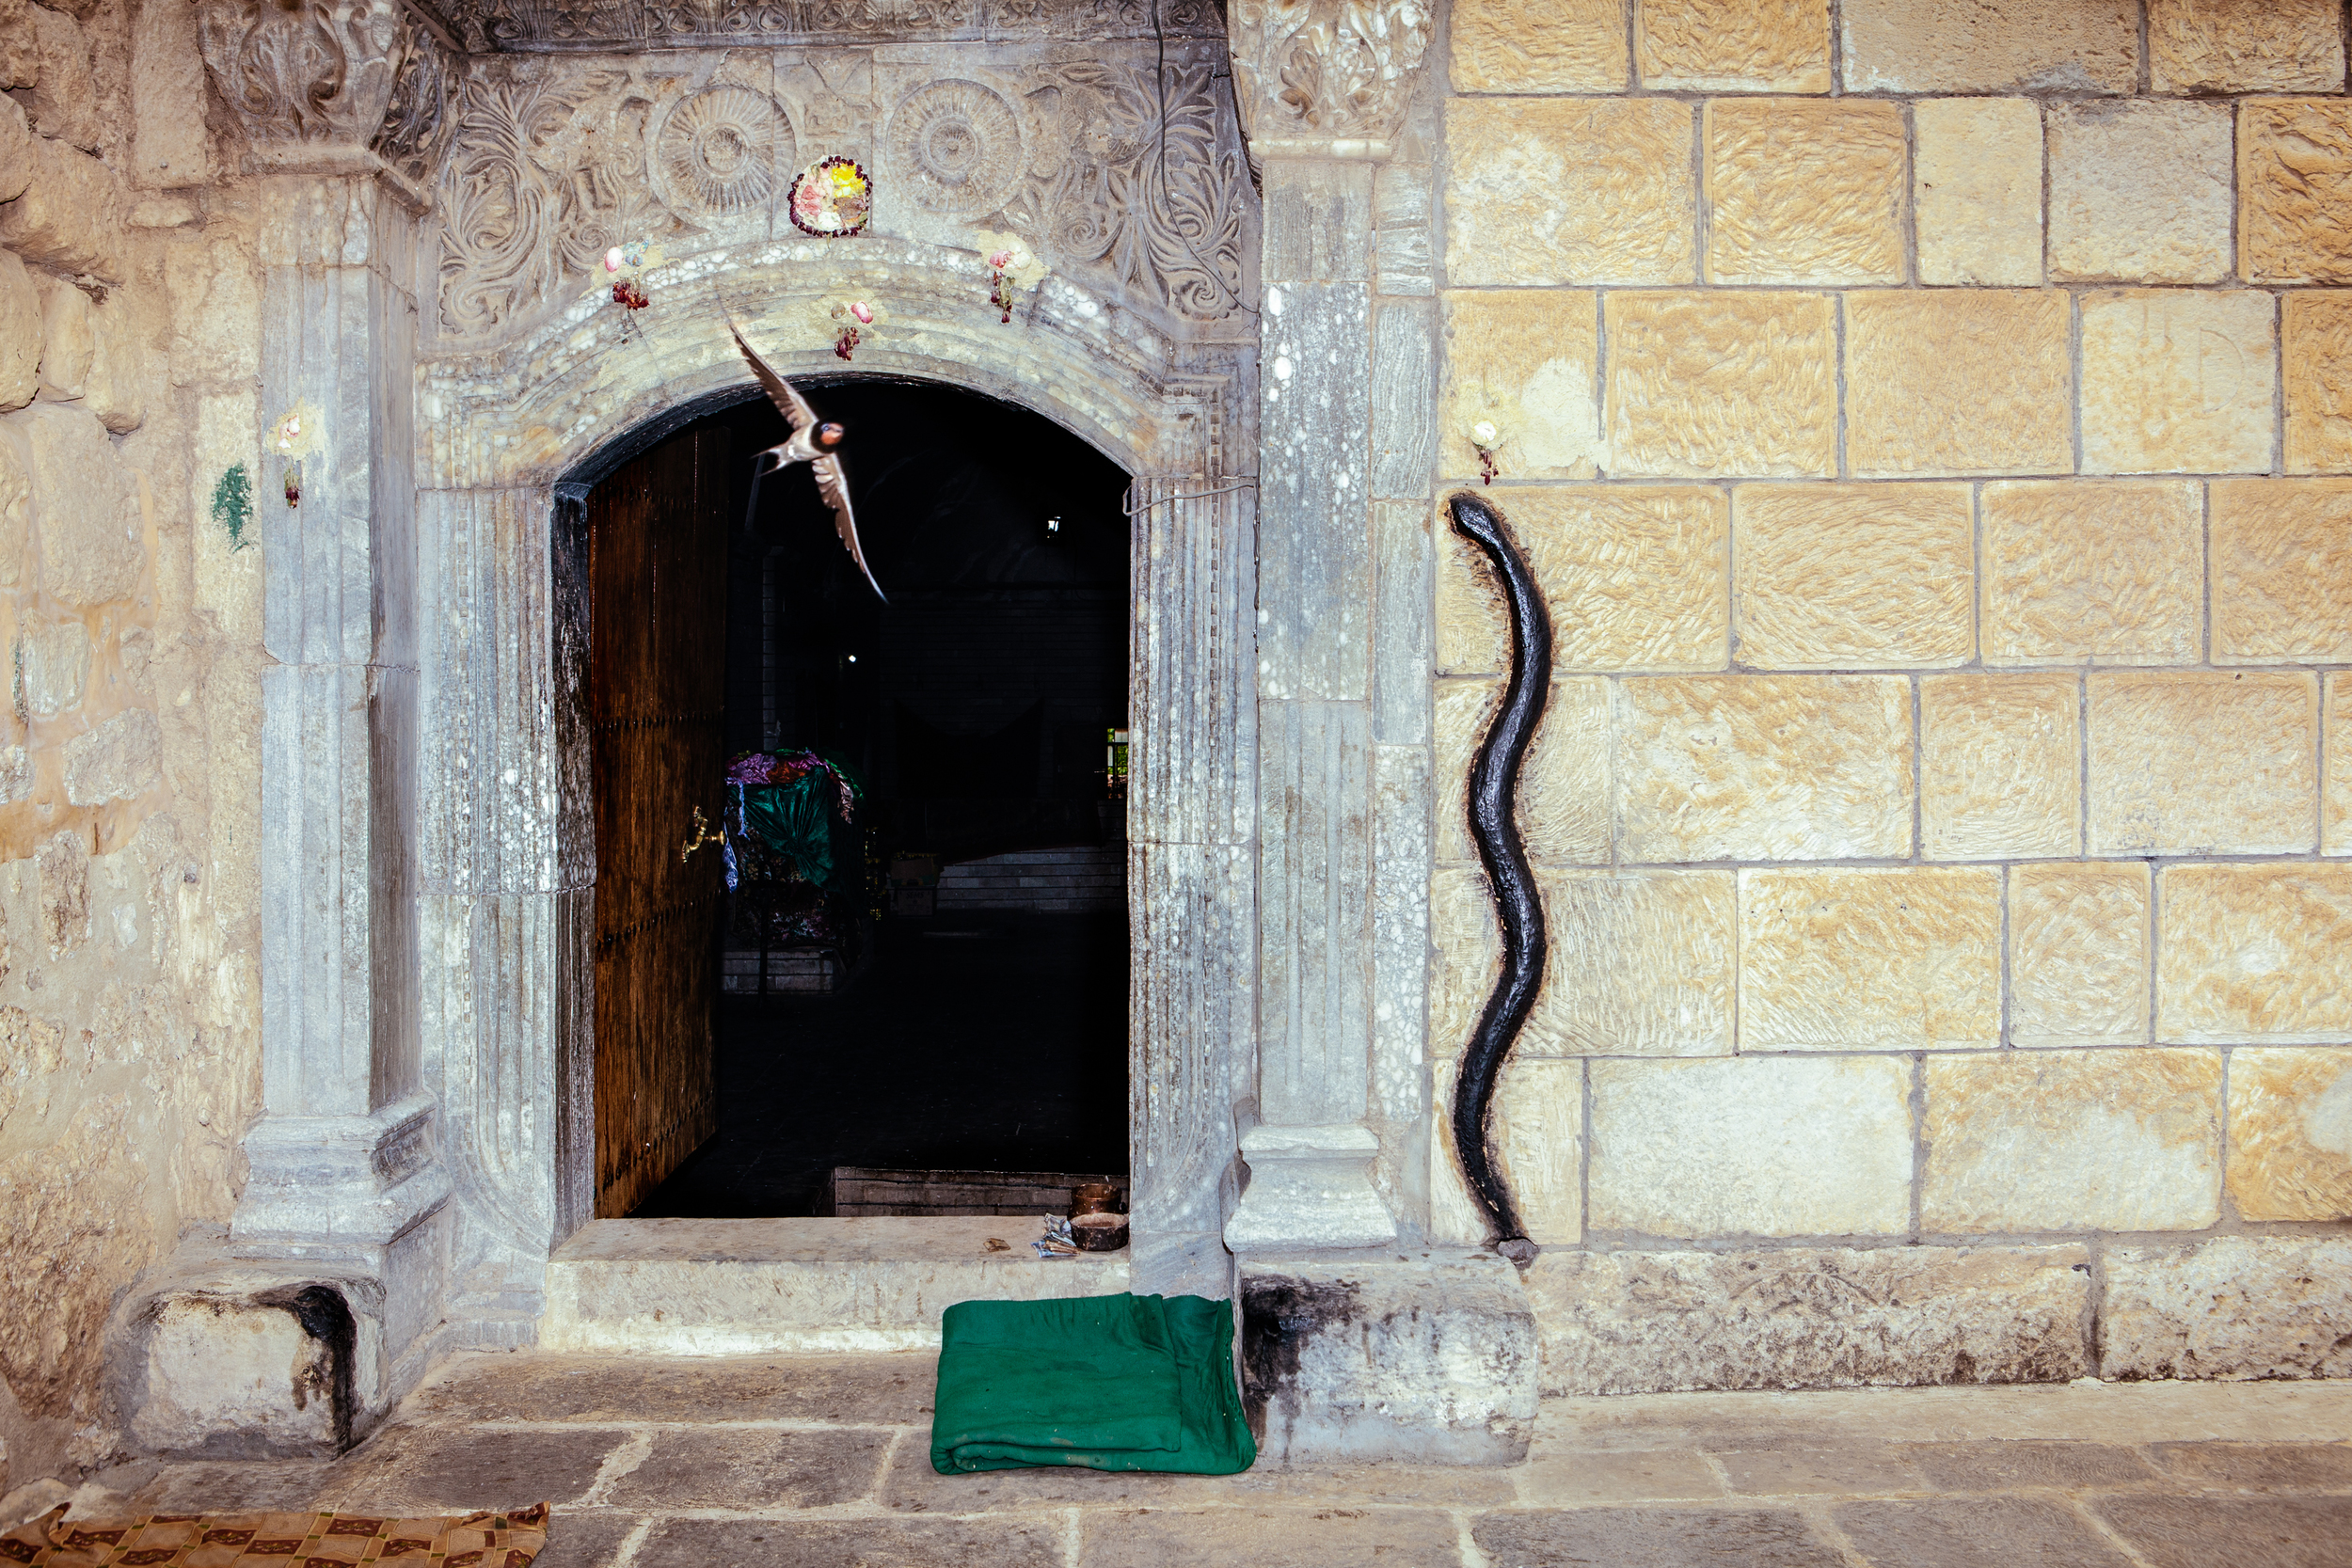 A bird flies out of Lalish temple which features a stone black snake on it's wall in Northern Iraqi Kurdistan. Lalish is the most sacred and only Yezidi temple in the world. According to legend, the snake was once a live serpent but was transformed it into a solid fixture by Sheikh Adi when it attempted to scale the wall of the temple.